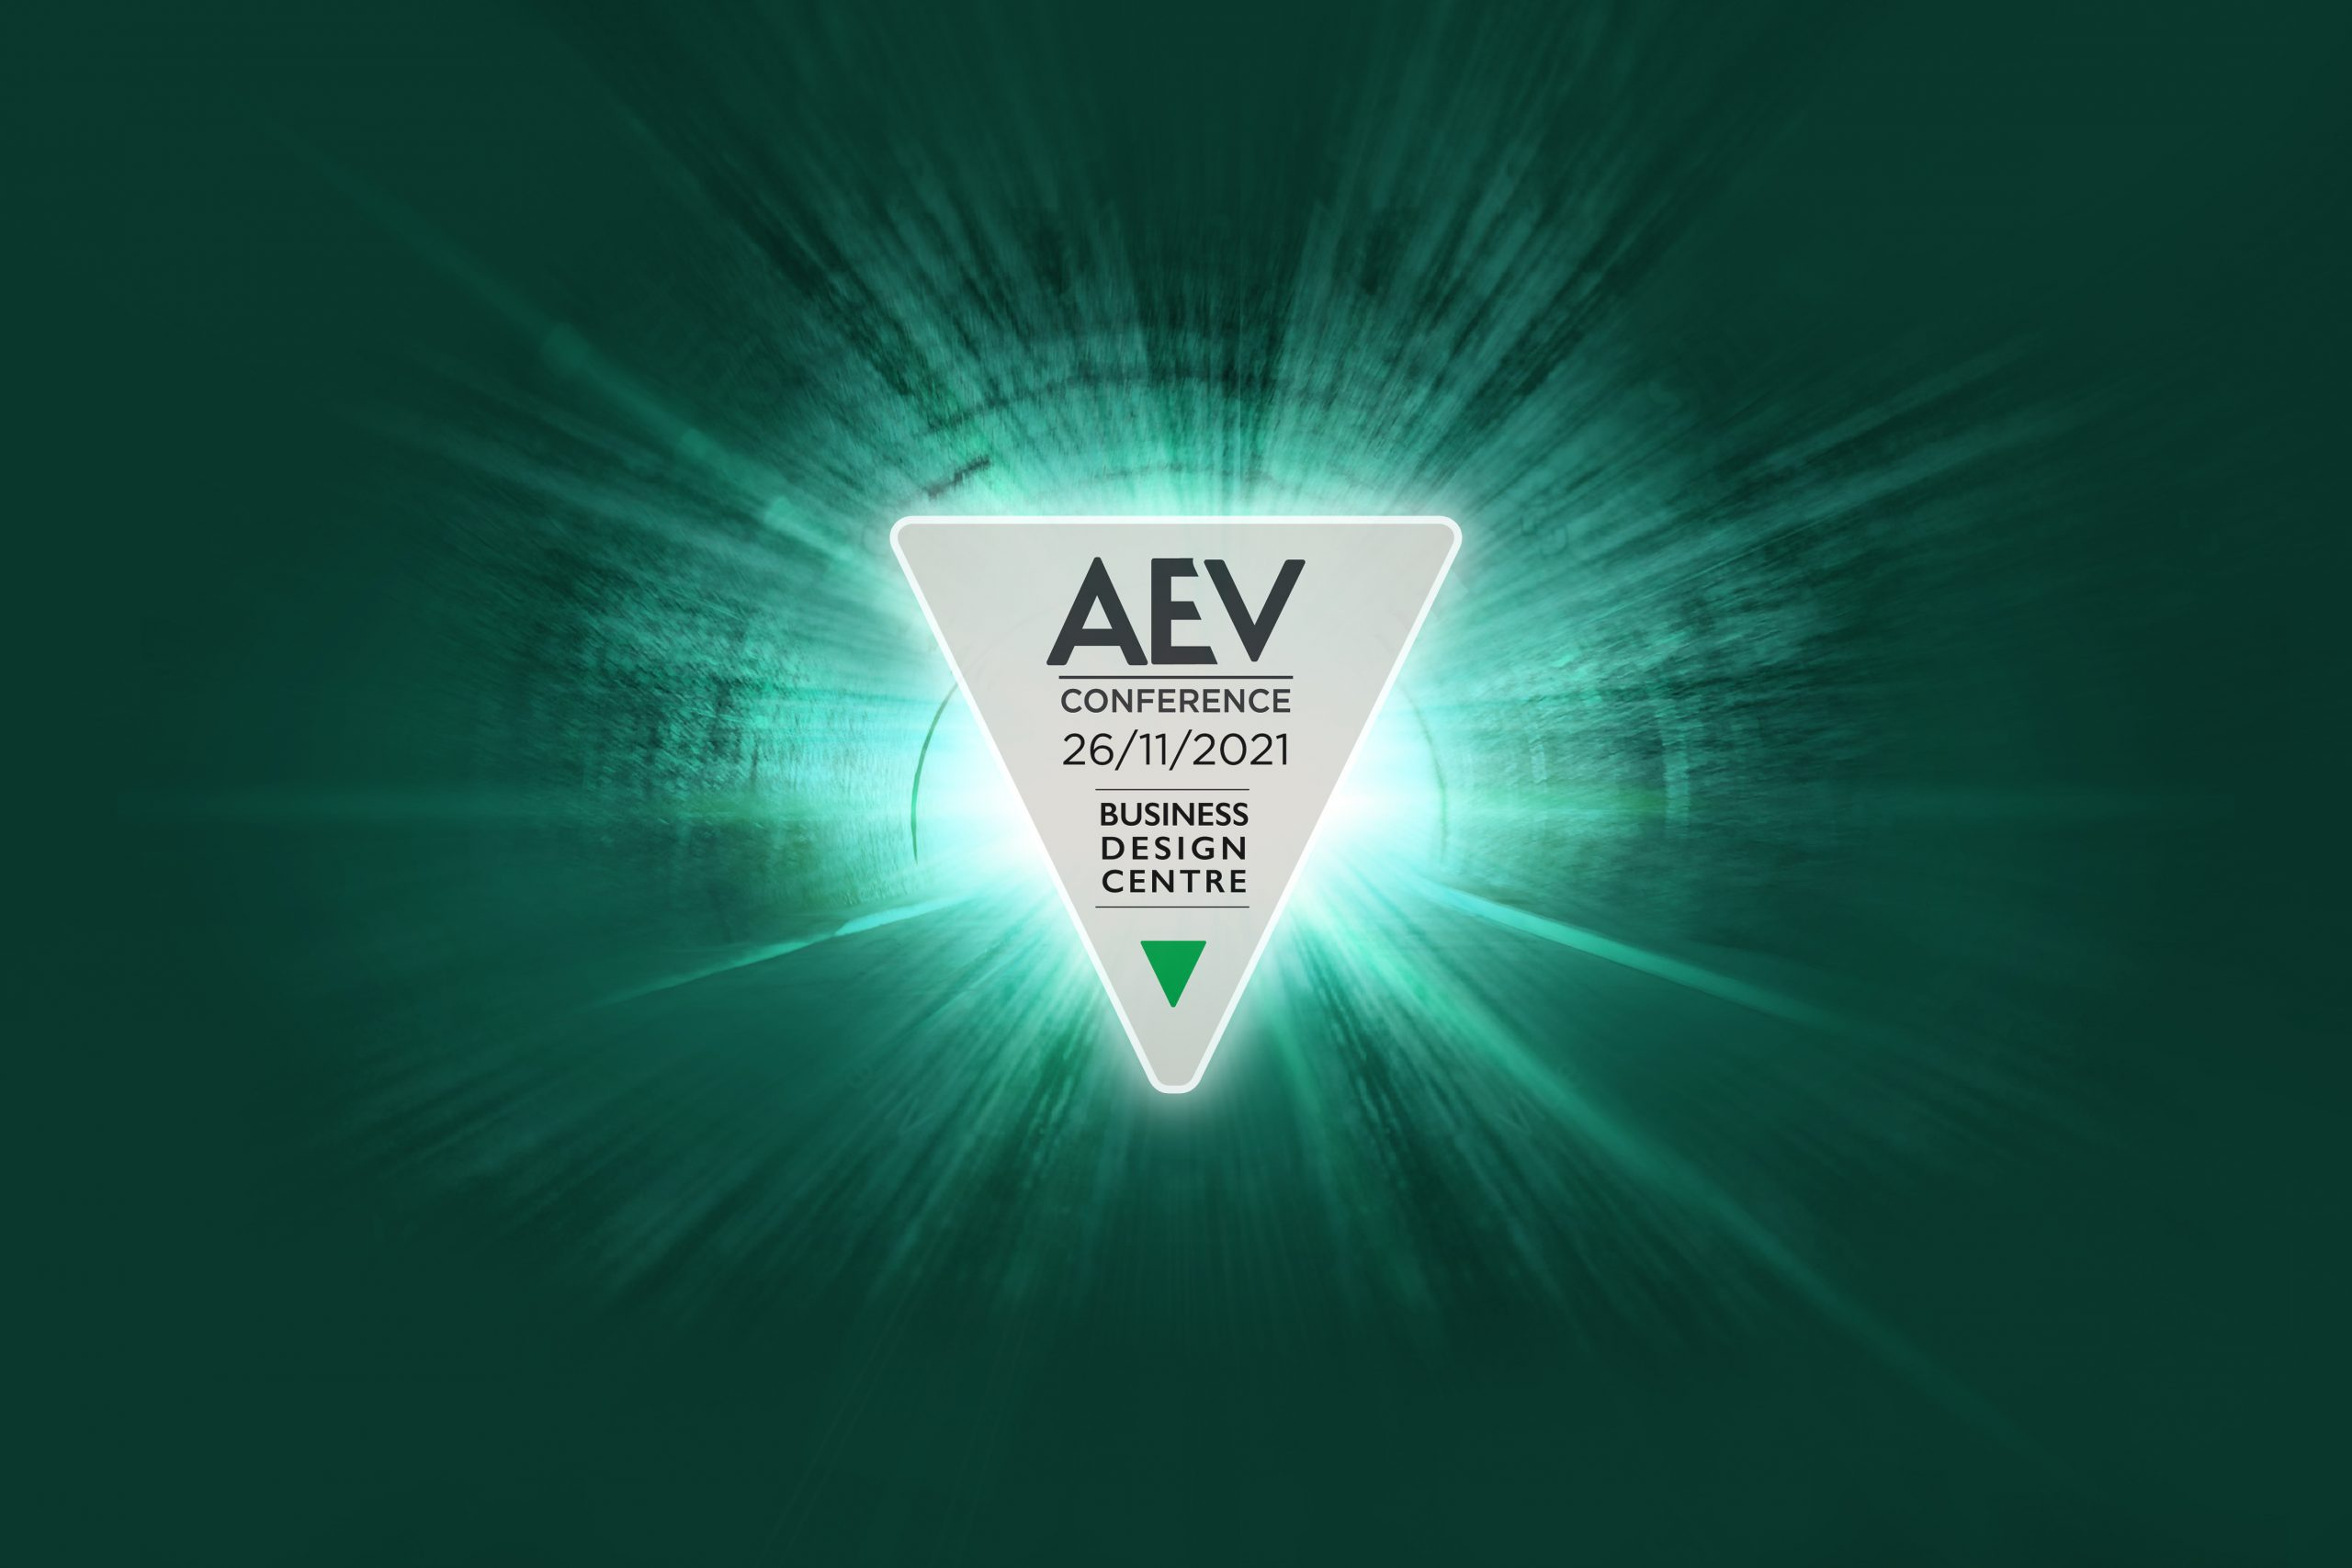 AEV Conference 2021 – Disruption: the new norm